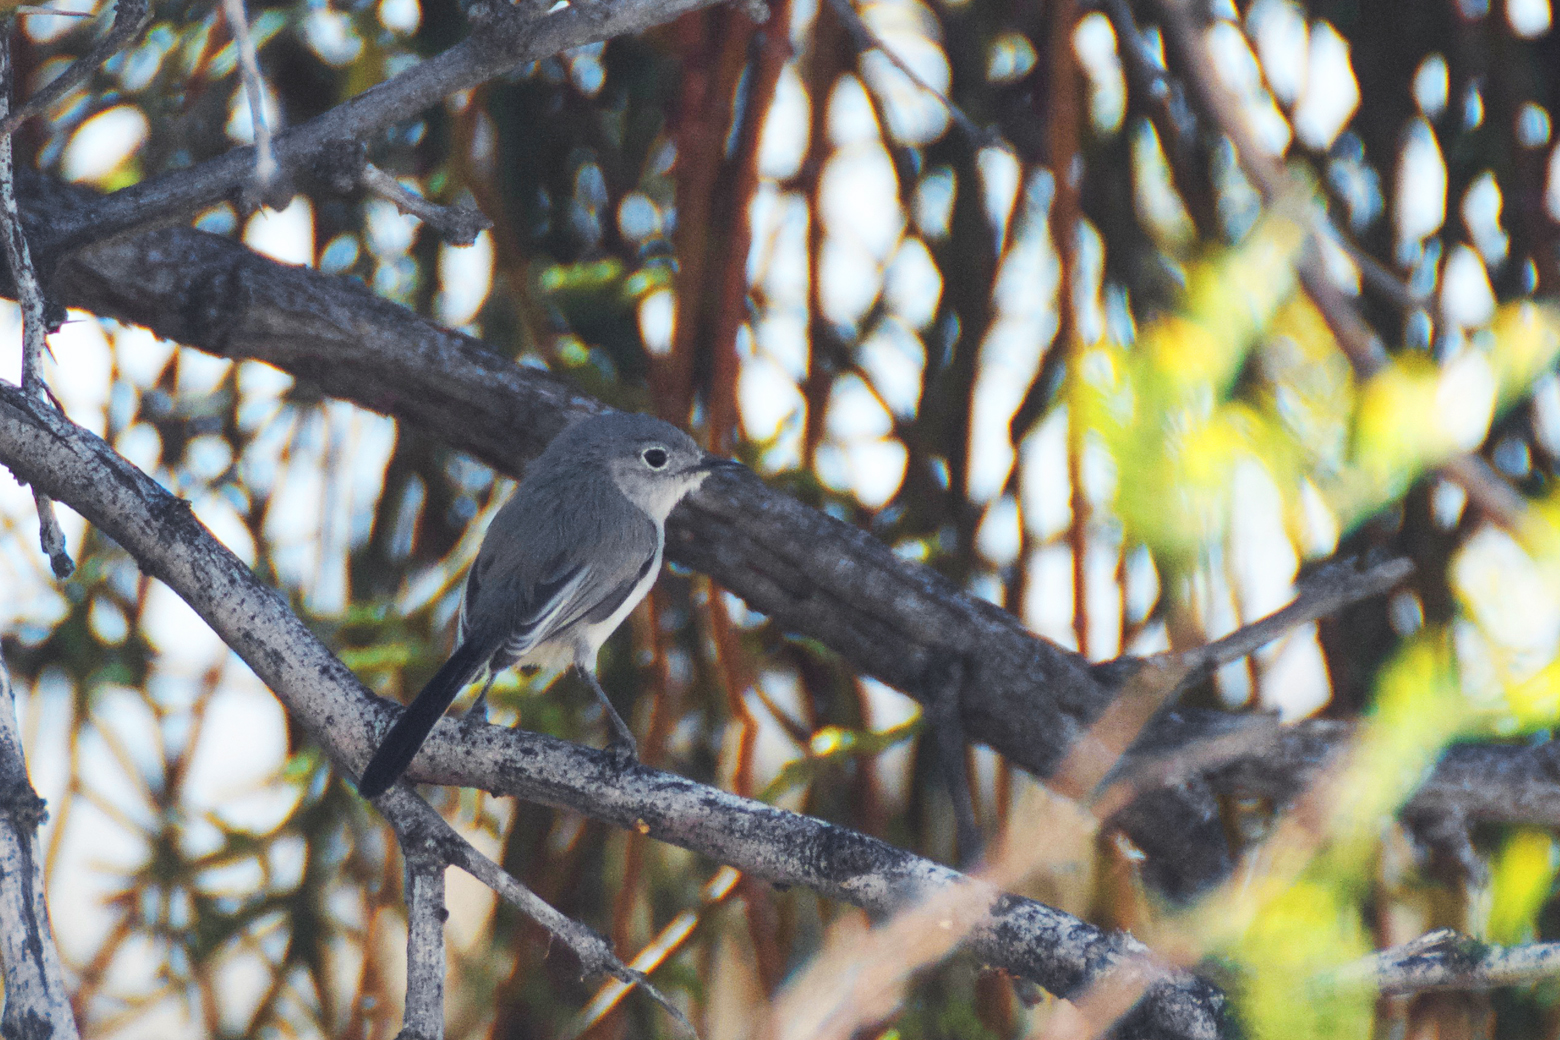 Side view of a black-tailed gnatcatcher perched on a branch